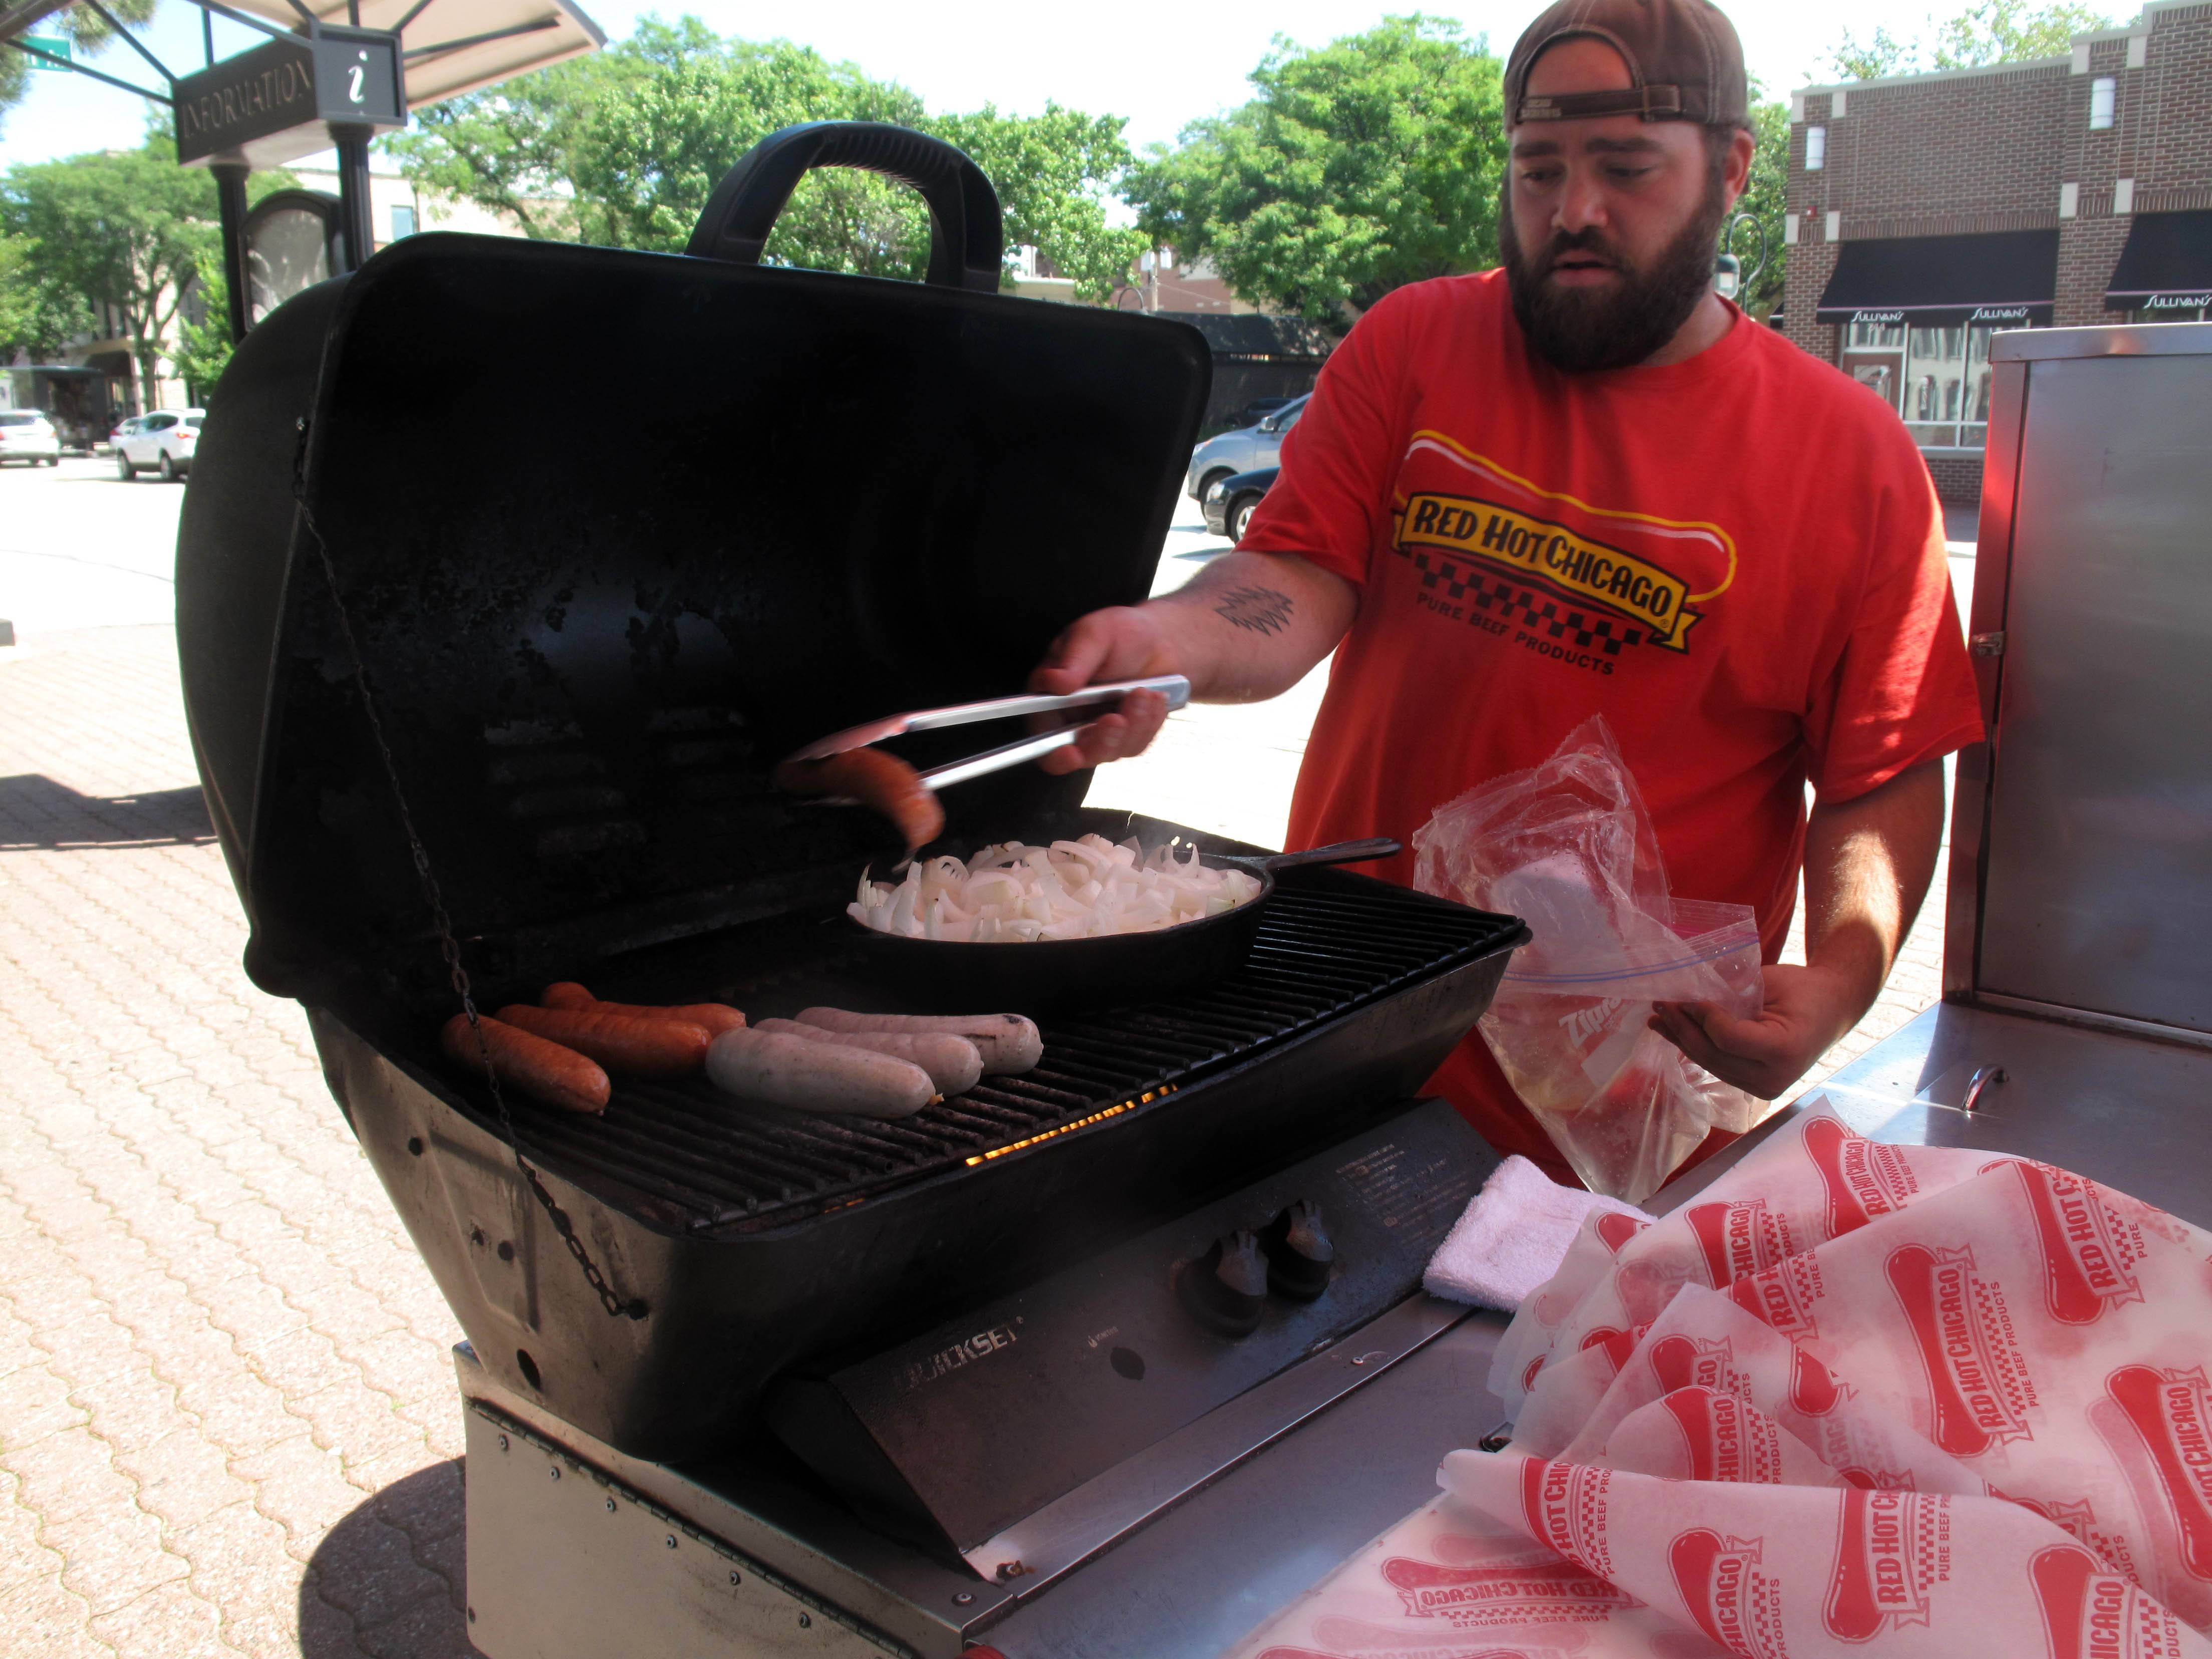 New downtown Naperville food cart program 'cuts the mustard'